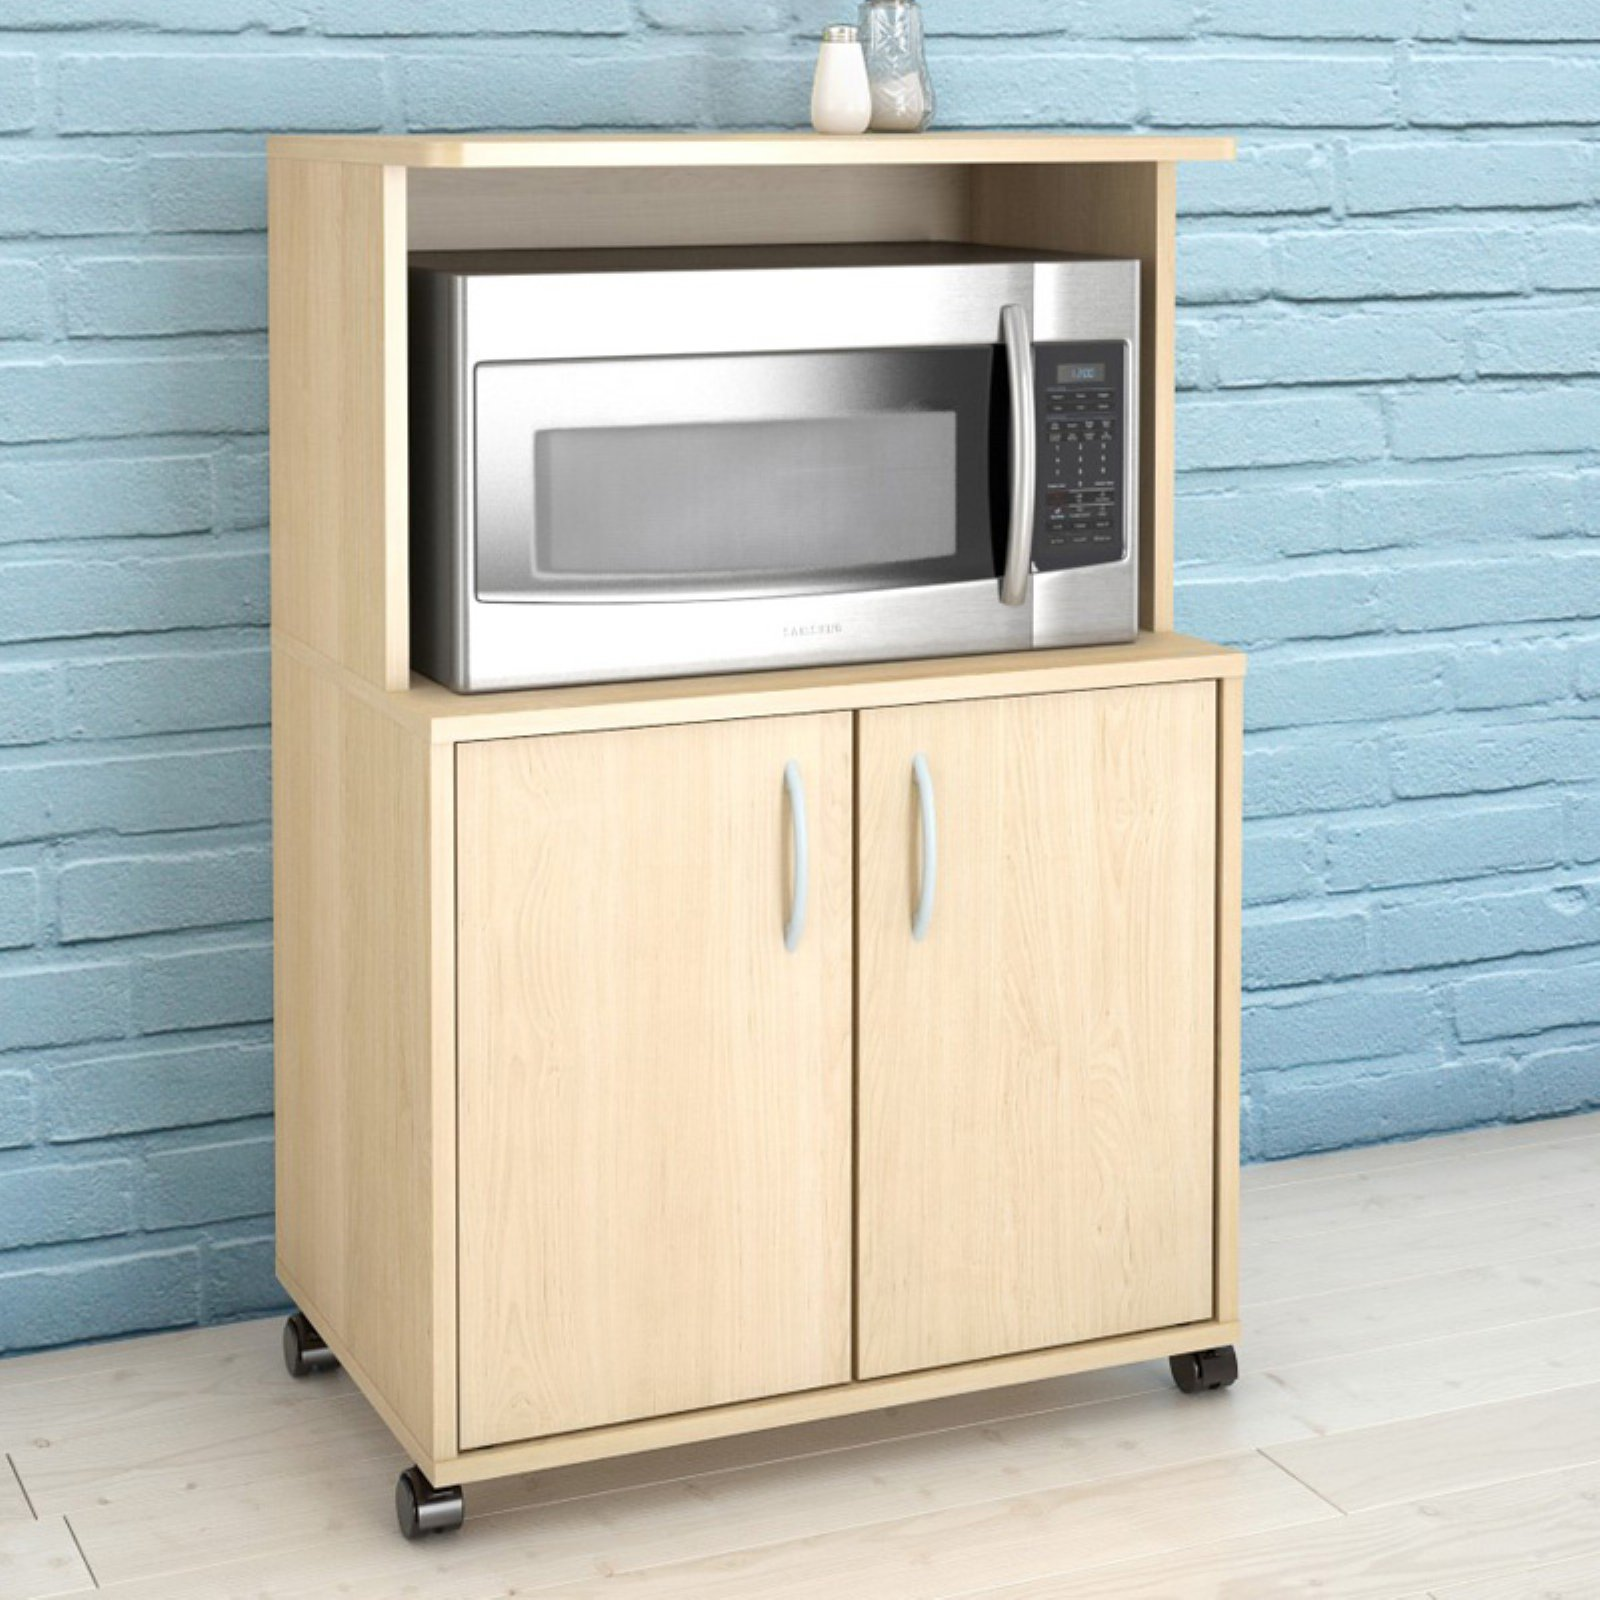 Microwave Kitchen Cart with Storage, Pine